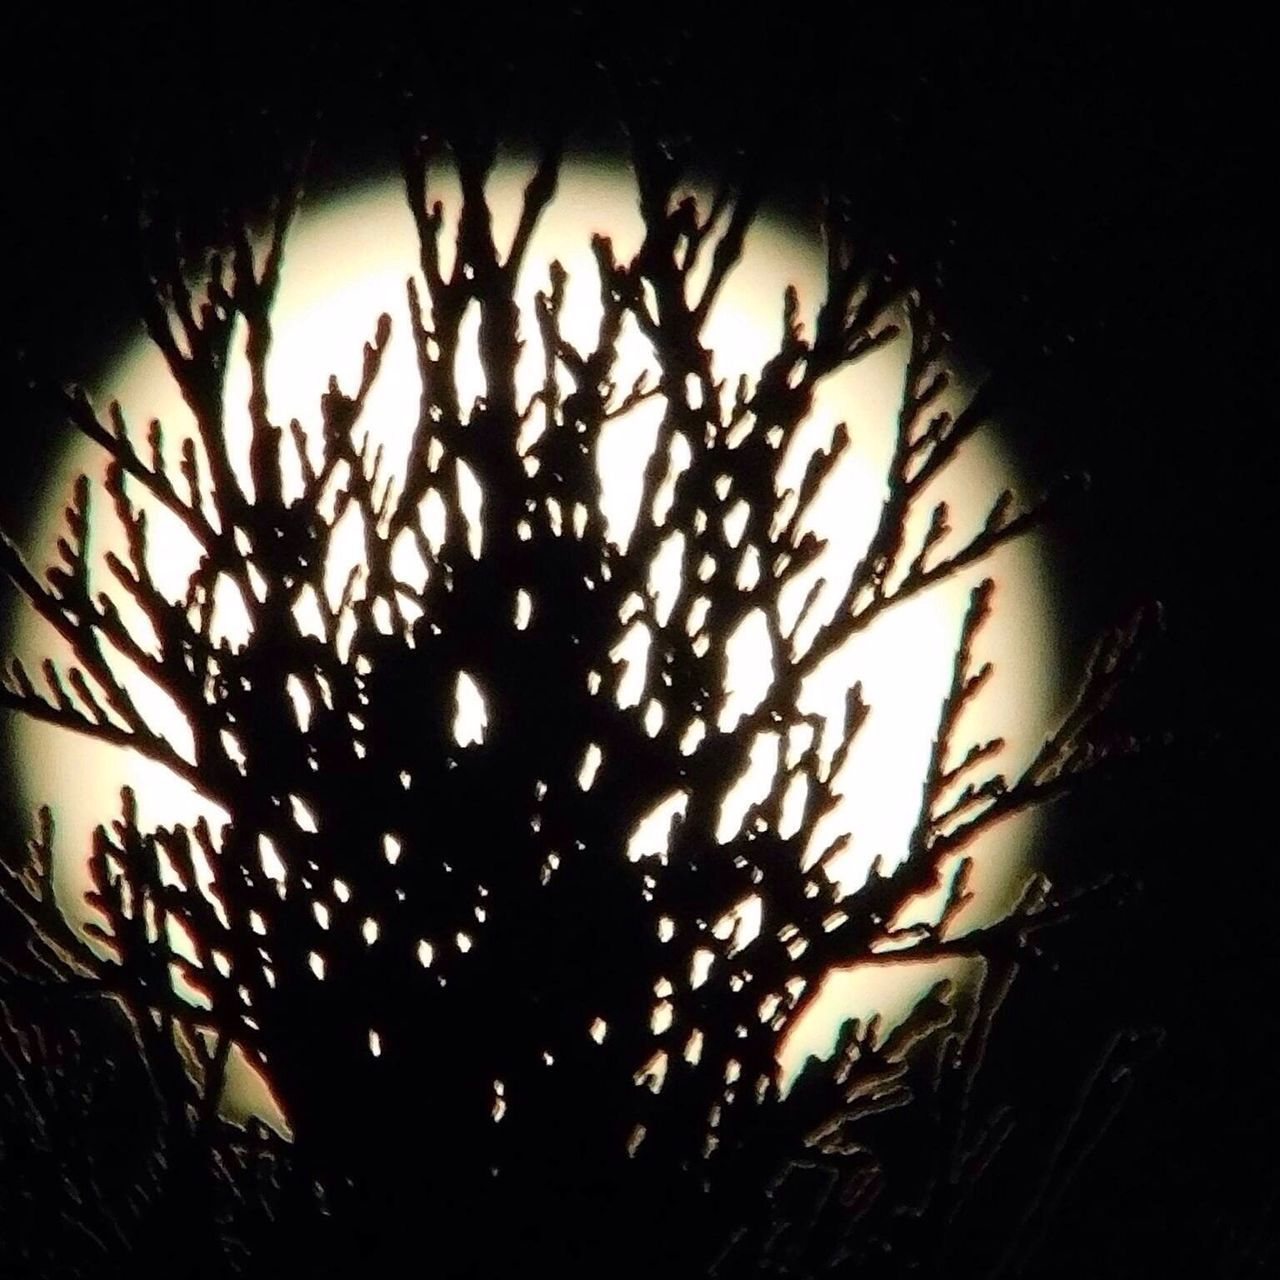 Moon Shots Outdoors Outside Photography Silhouettes Silhouette EyeEm Nature Lover Outdoor Pictures Night Photography Summer Solstice Streamzoofamily Nightphotography Outdoor Photography June 2016 Moon Night Sky New England  Beautiful Nature